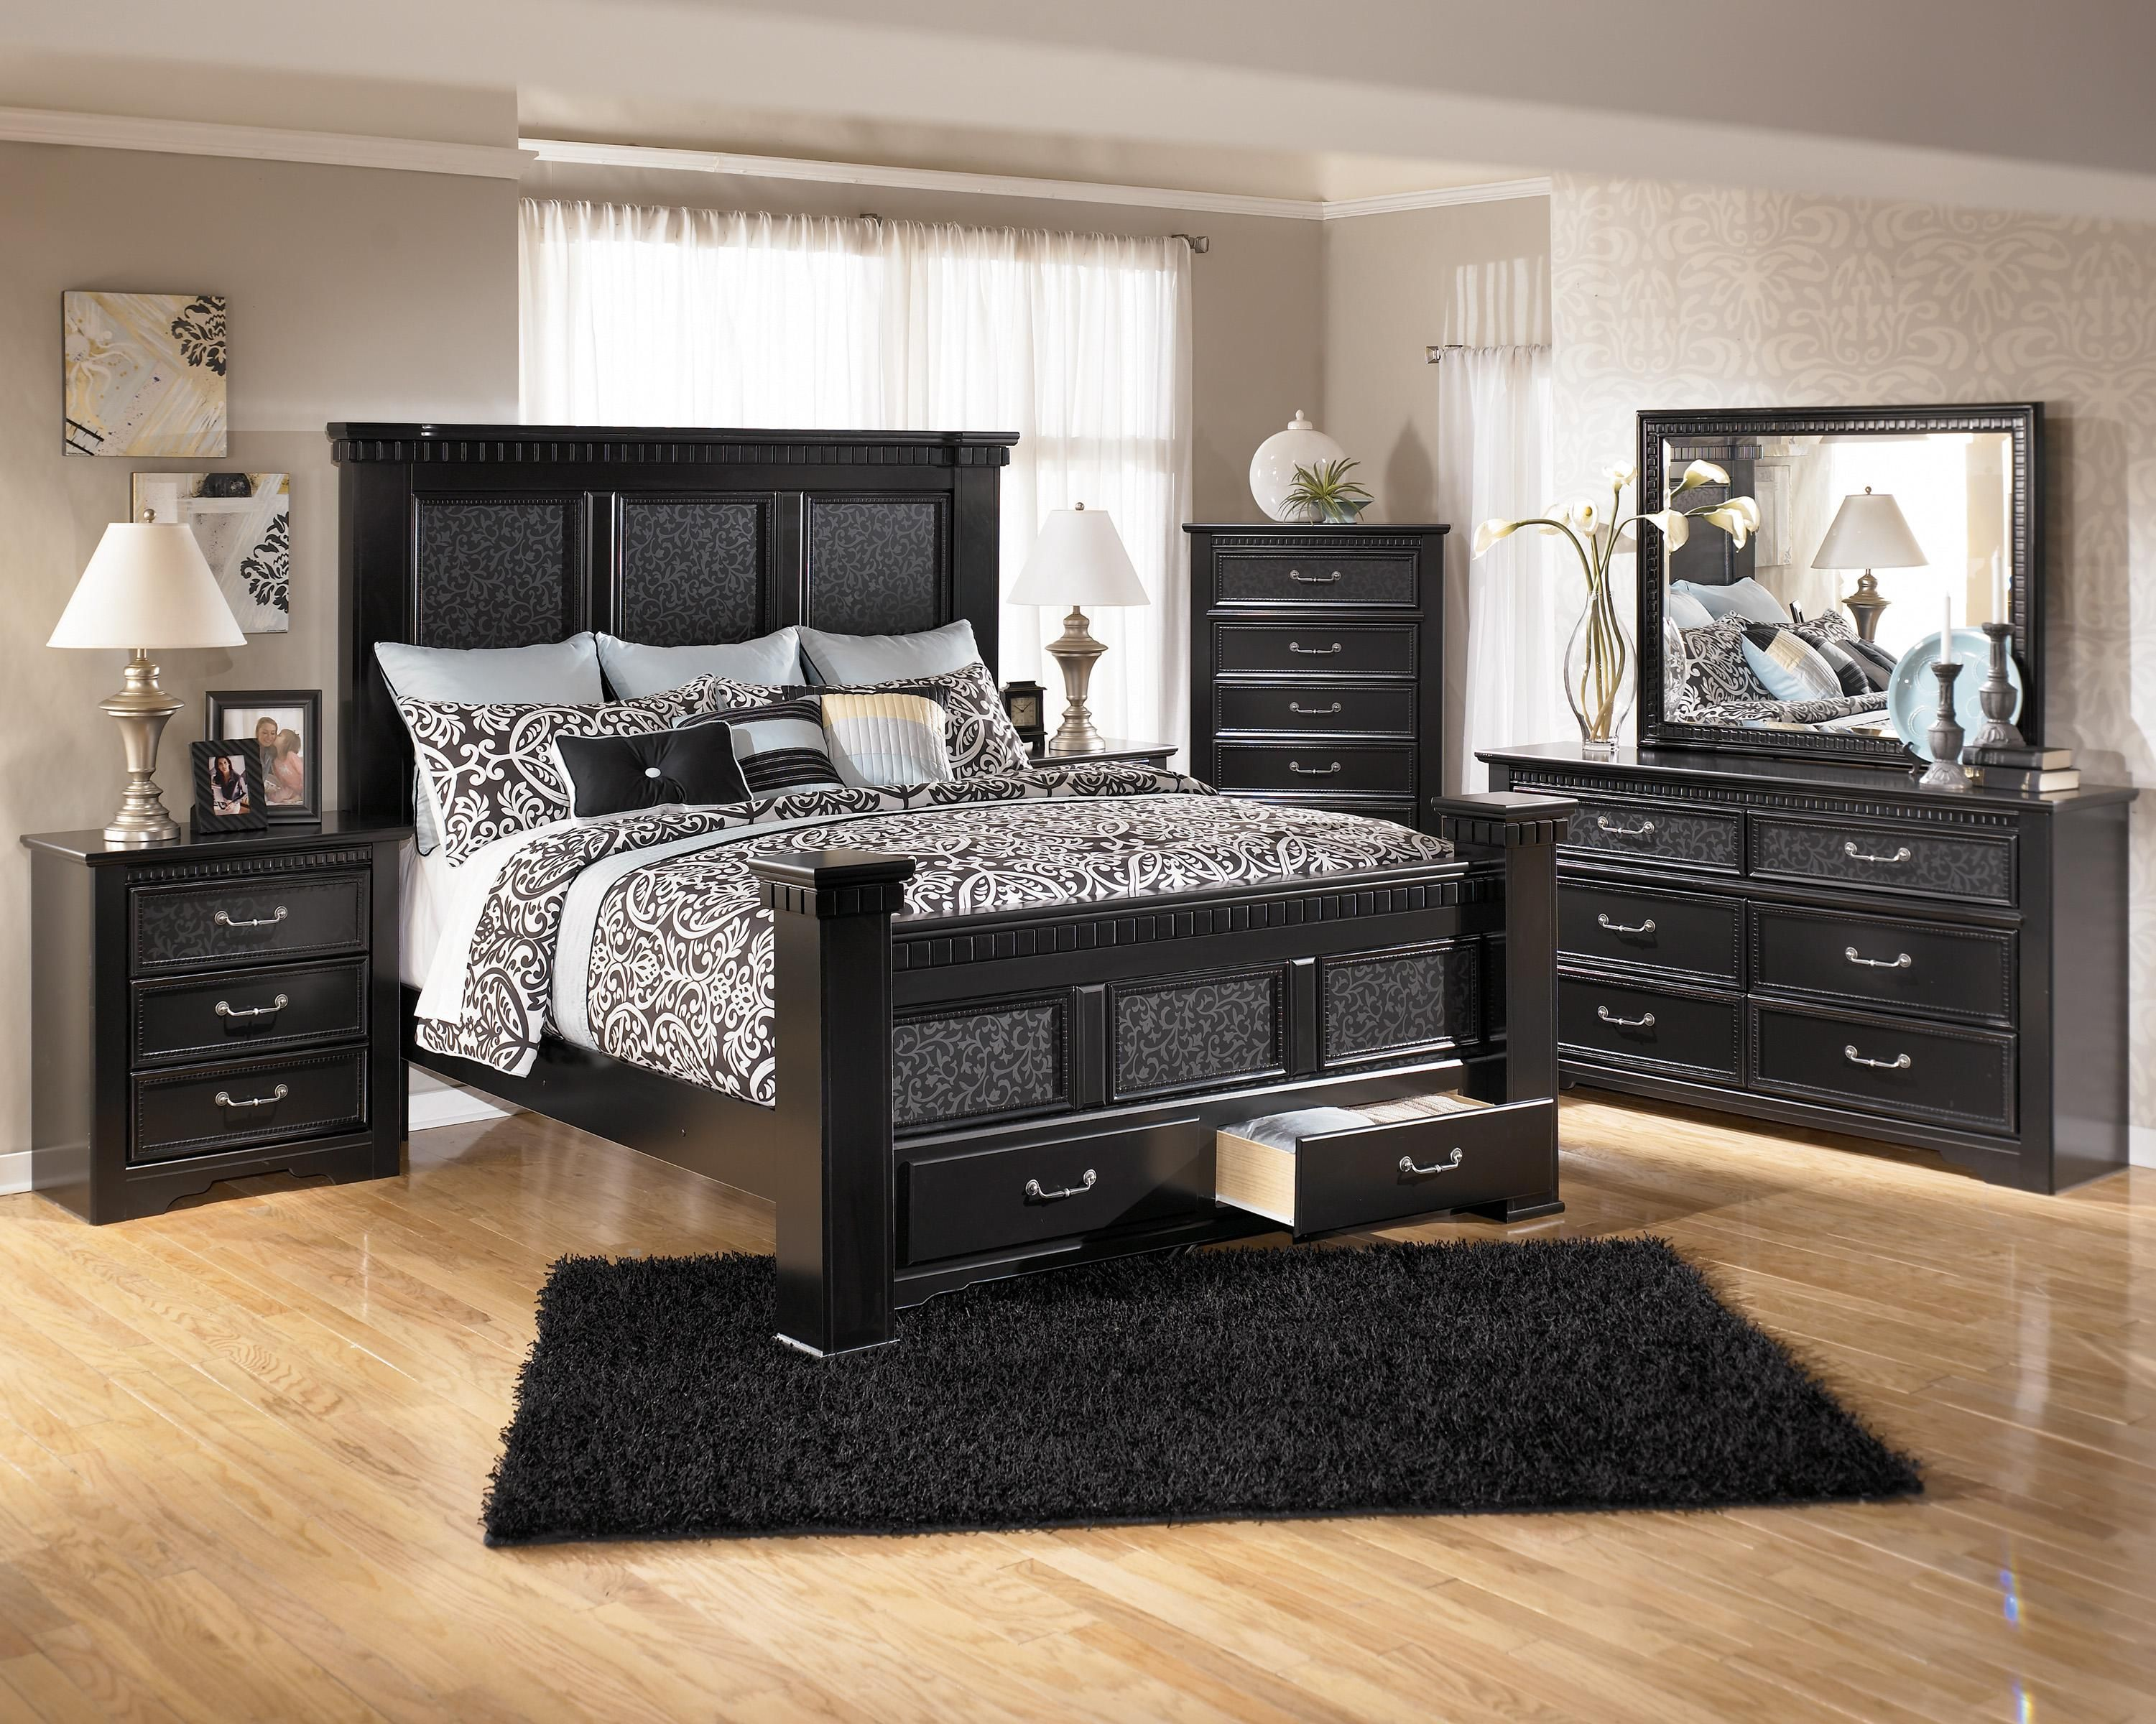 Queen Bedroom Furniture Sets Under 500 17 Best Ideas About Bedroom Furniture Sets On Pinterest Master